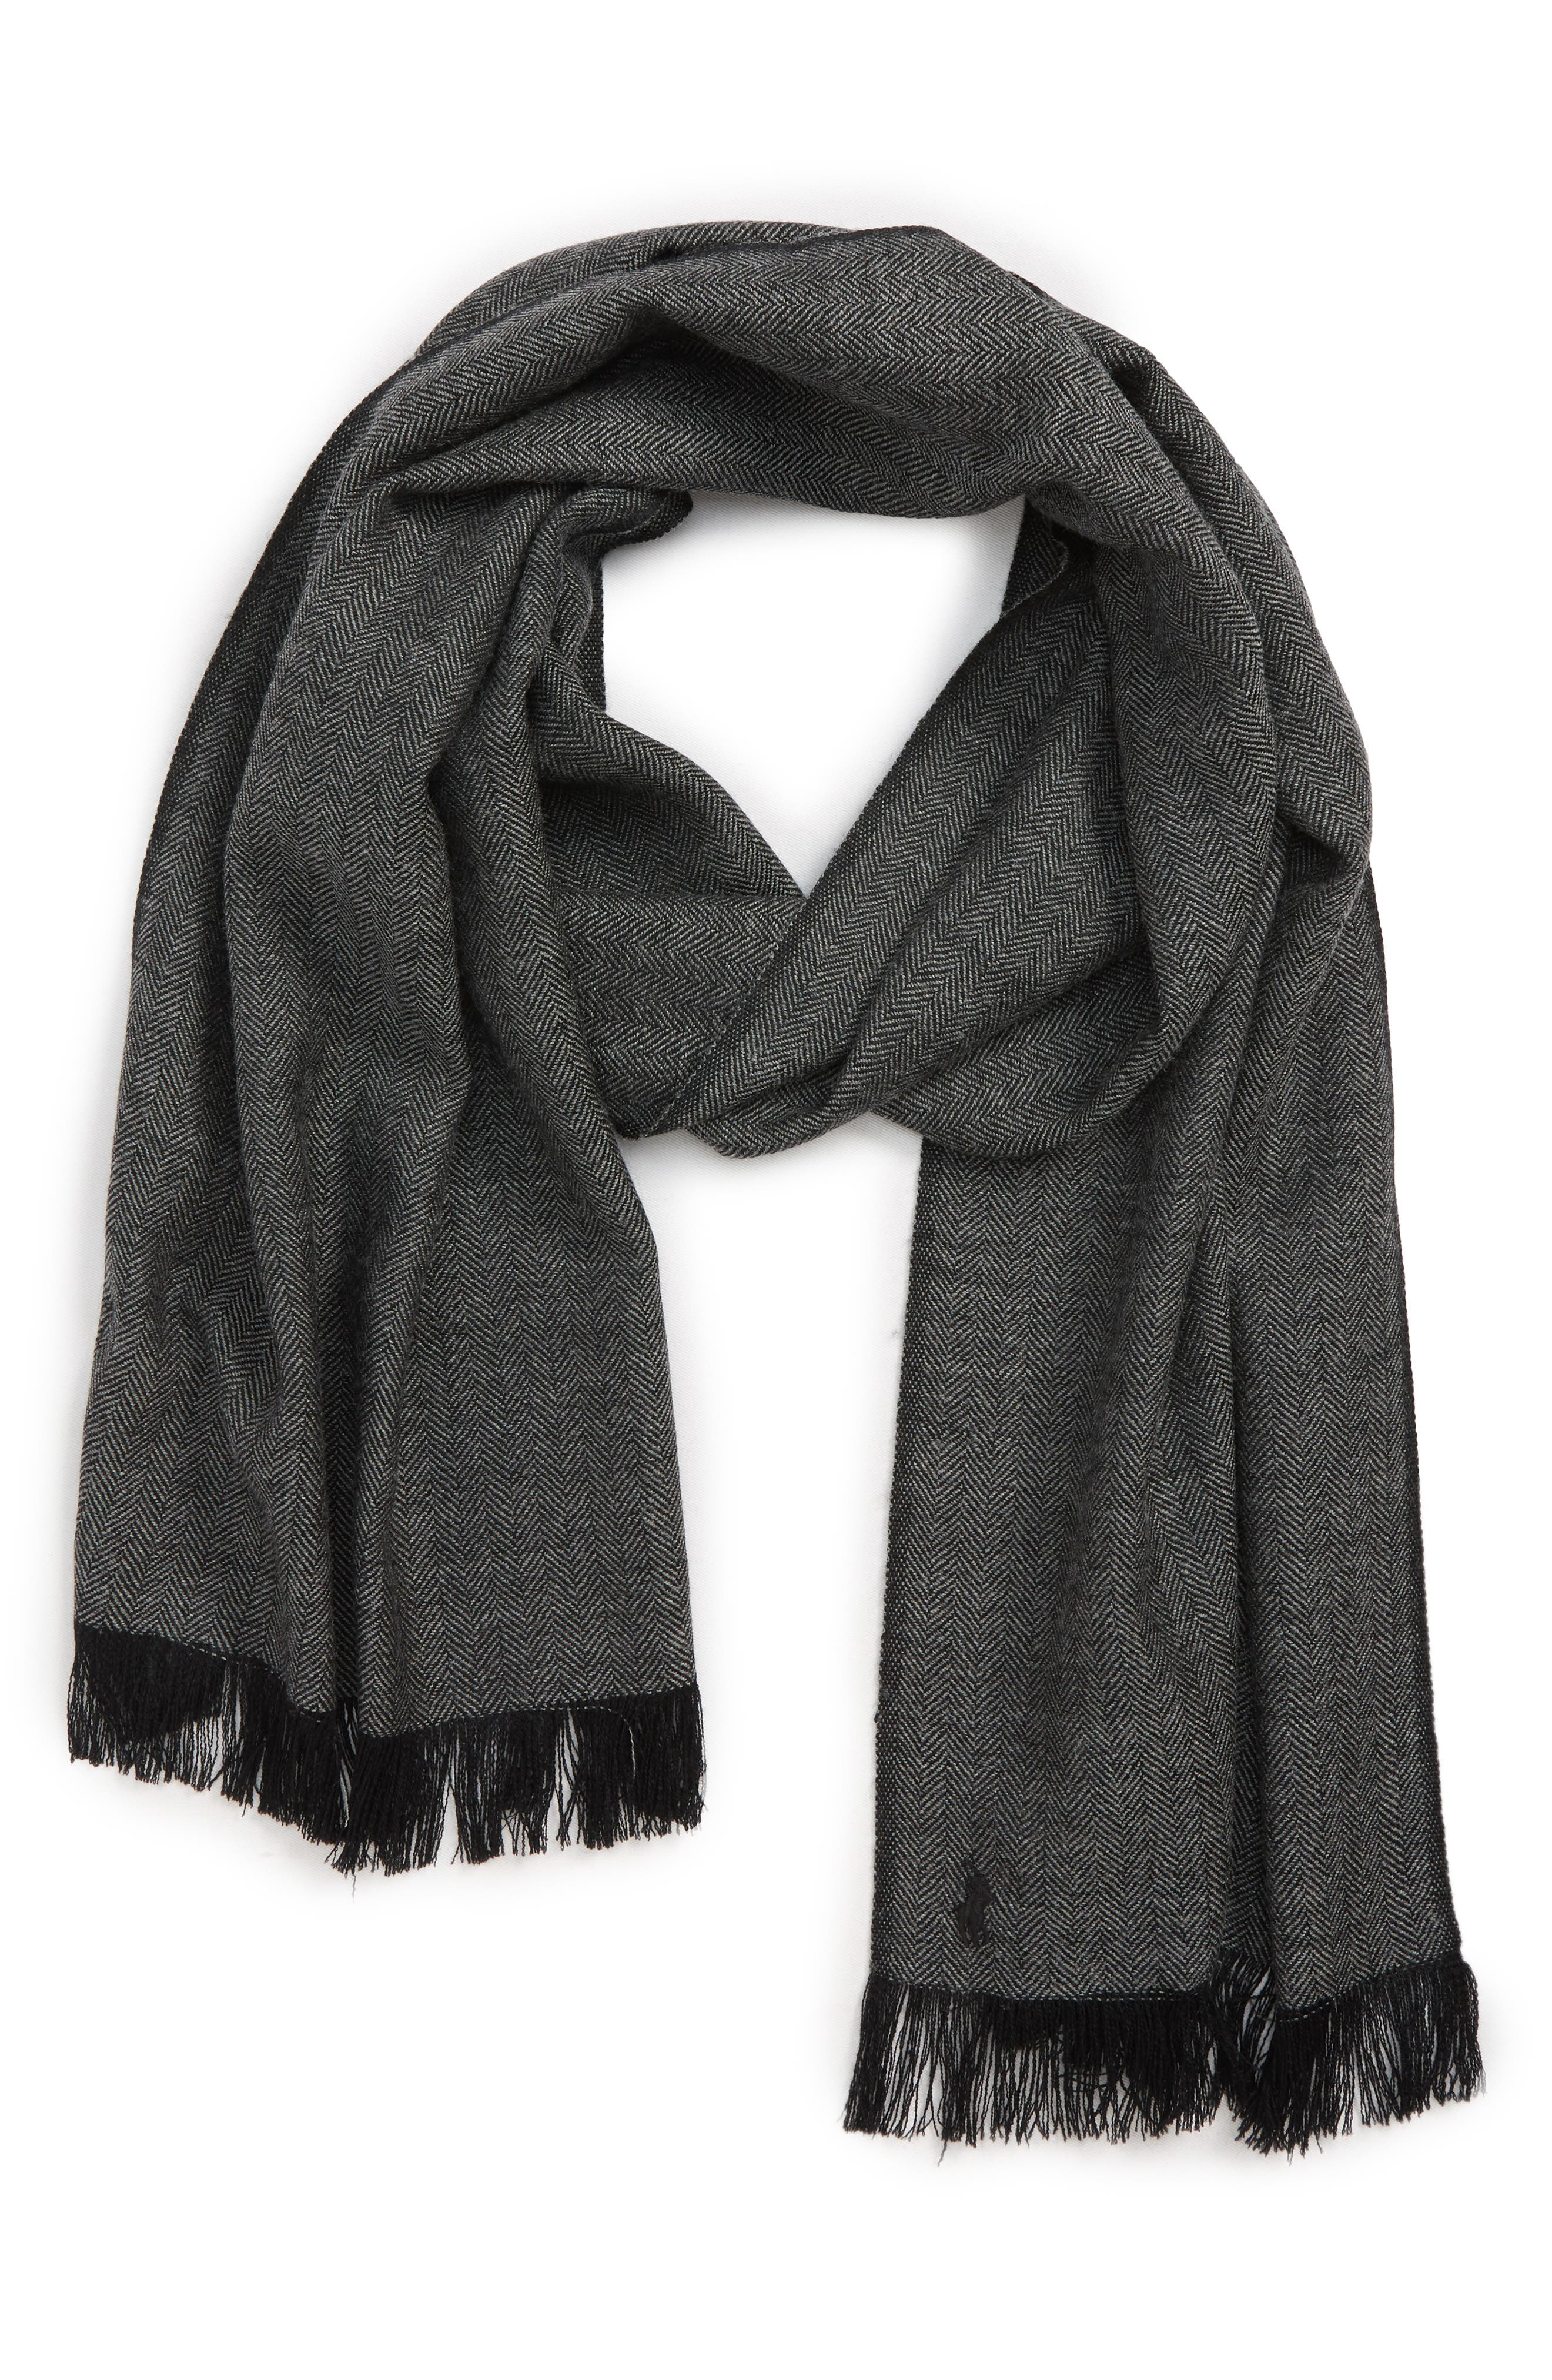 Patterned Merino Wool Scarf,                             Main thumbnail 1, color,                             CHARCOAL/ BLACK